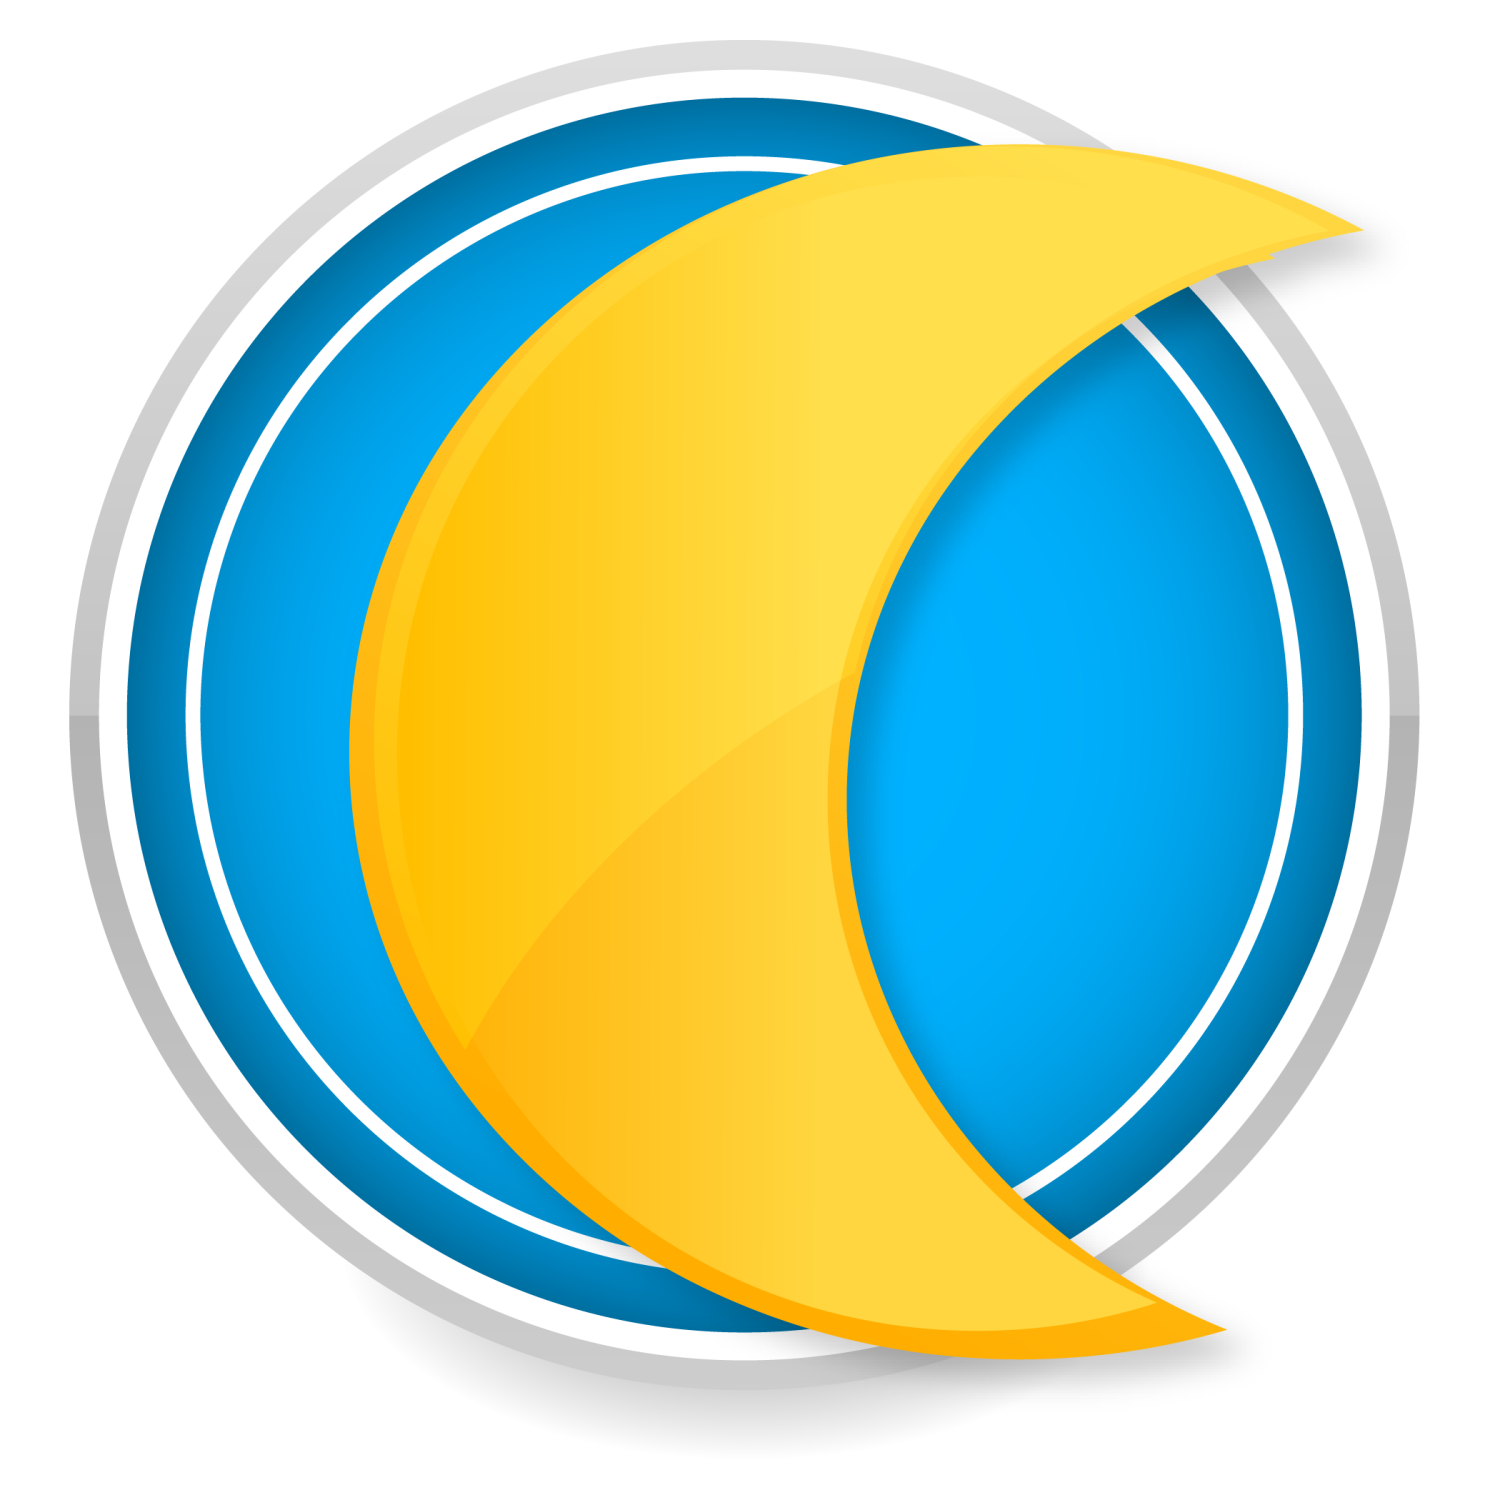 all designers free vector moon icon yellow color in EPS and JPG formats was created for you.